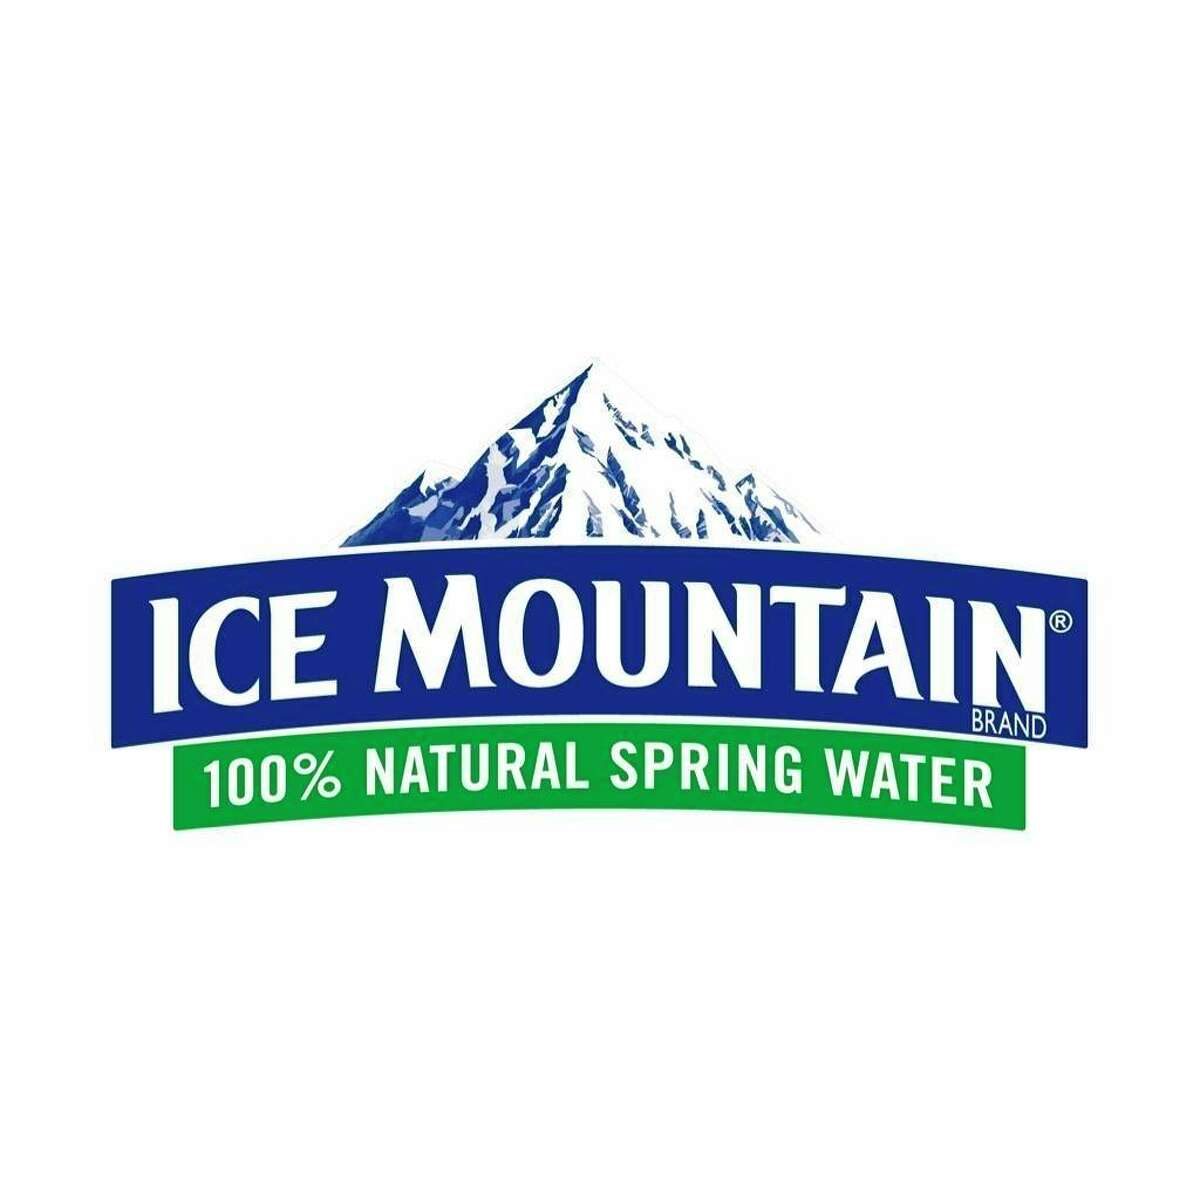 The Ice Mountain Environmental Stewardship Fund grant program is currently taking applications. (Photo courtesy of Ice Mountain)